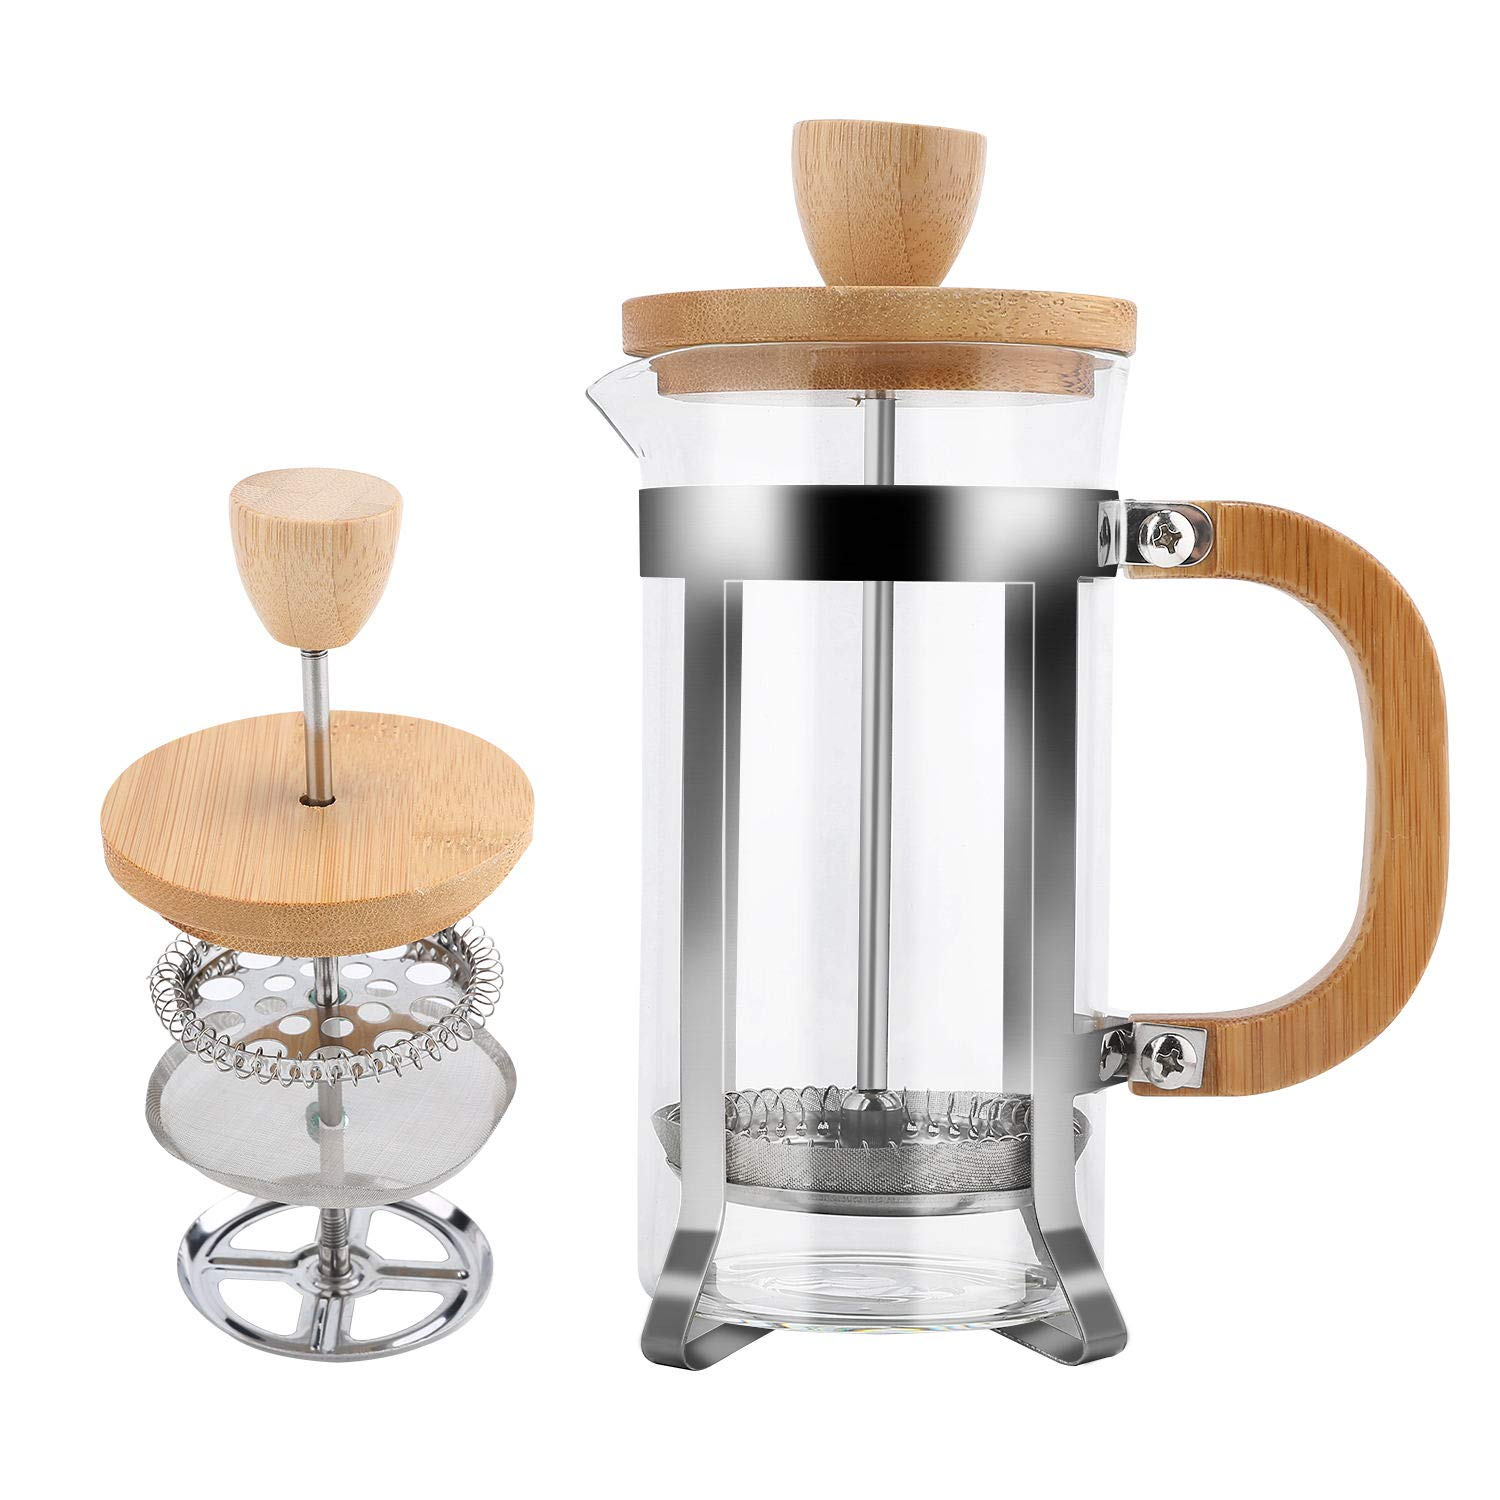 French Press Coffee and Tea Maker by Pour (350ml, 12 oz), Milk Frother with Bamboo Handle 18/8 Heat Resistant Stainless Steel Filter, Thick Borosilicate Glass, Easy to Clean by YIDADA